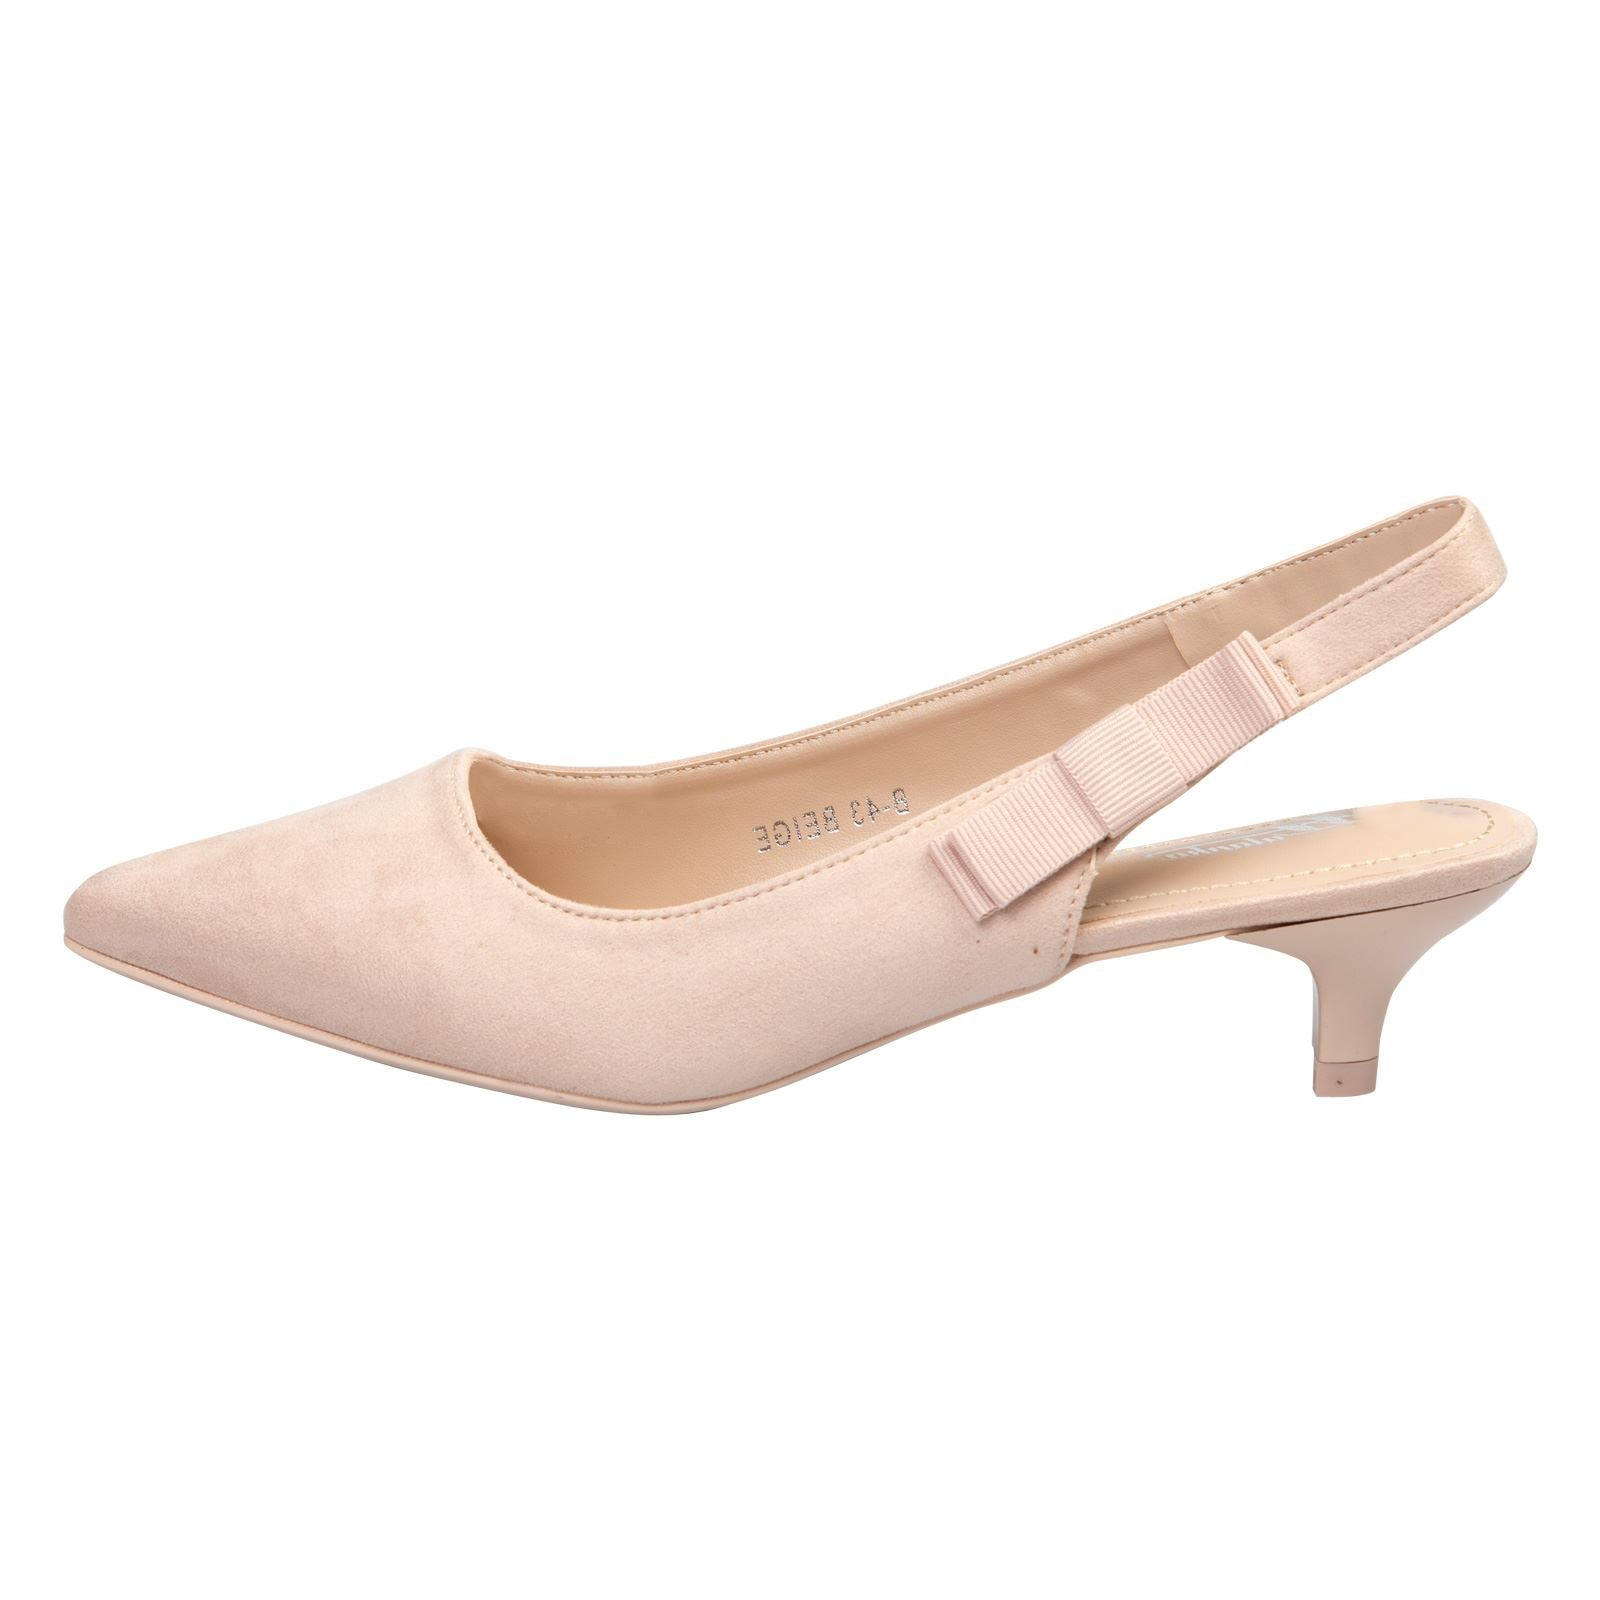 Alora Slingback Pumps in Beige Nude Faux Suede - Feet First Fashion